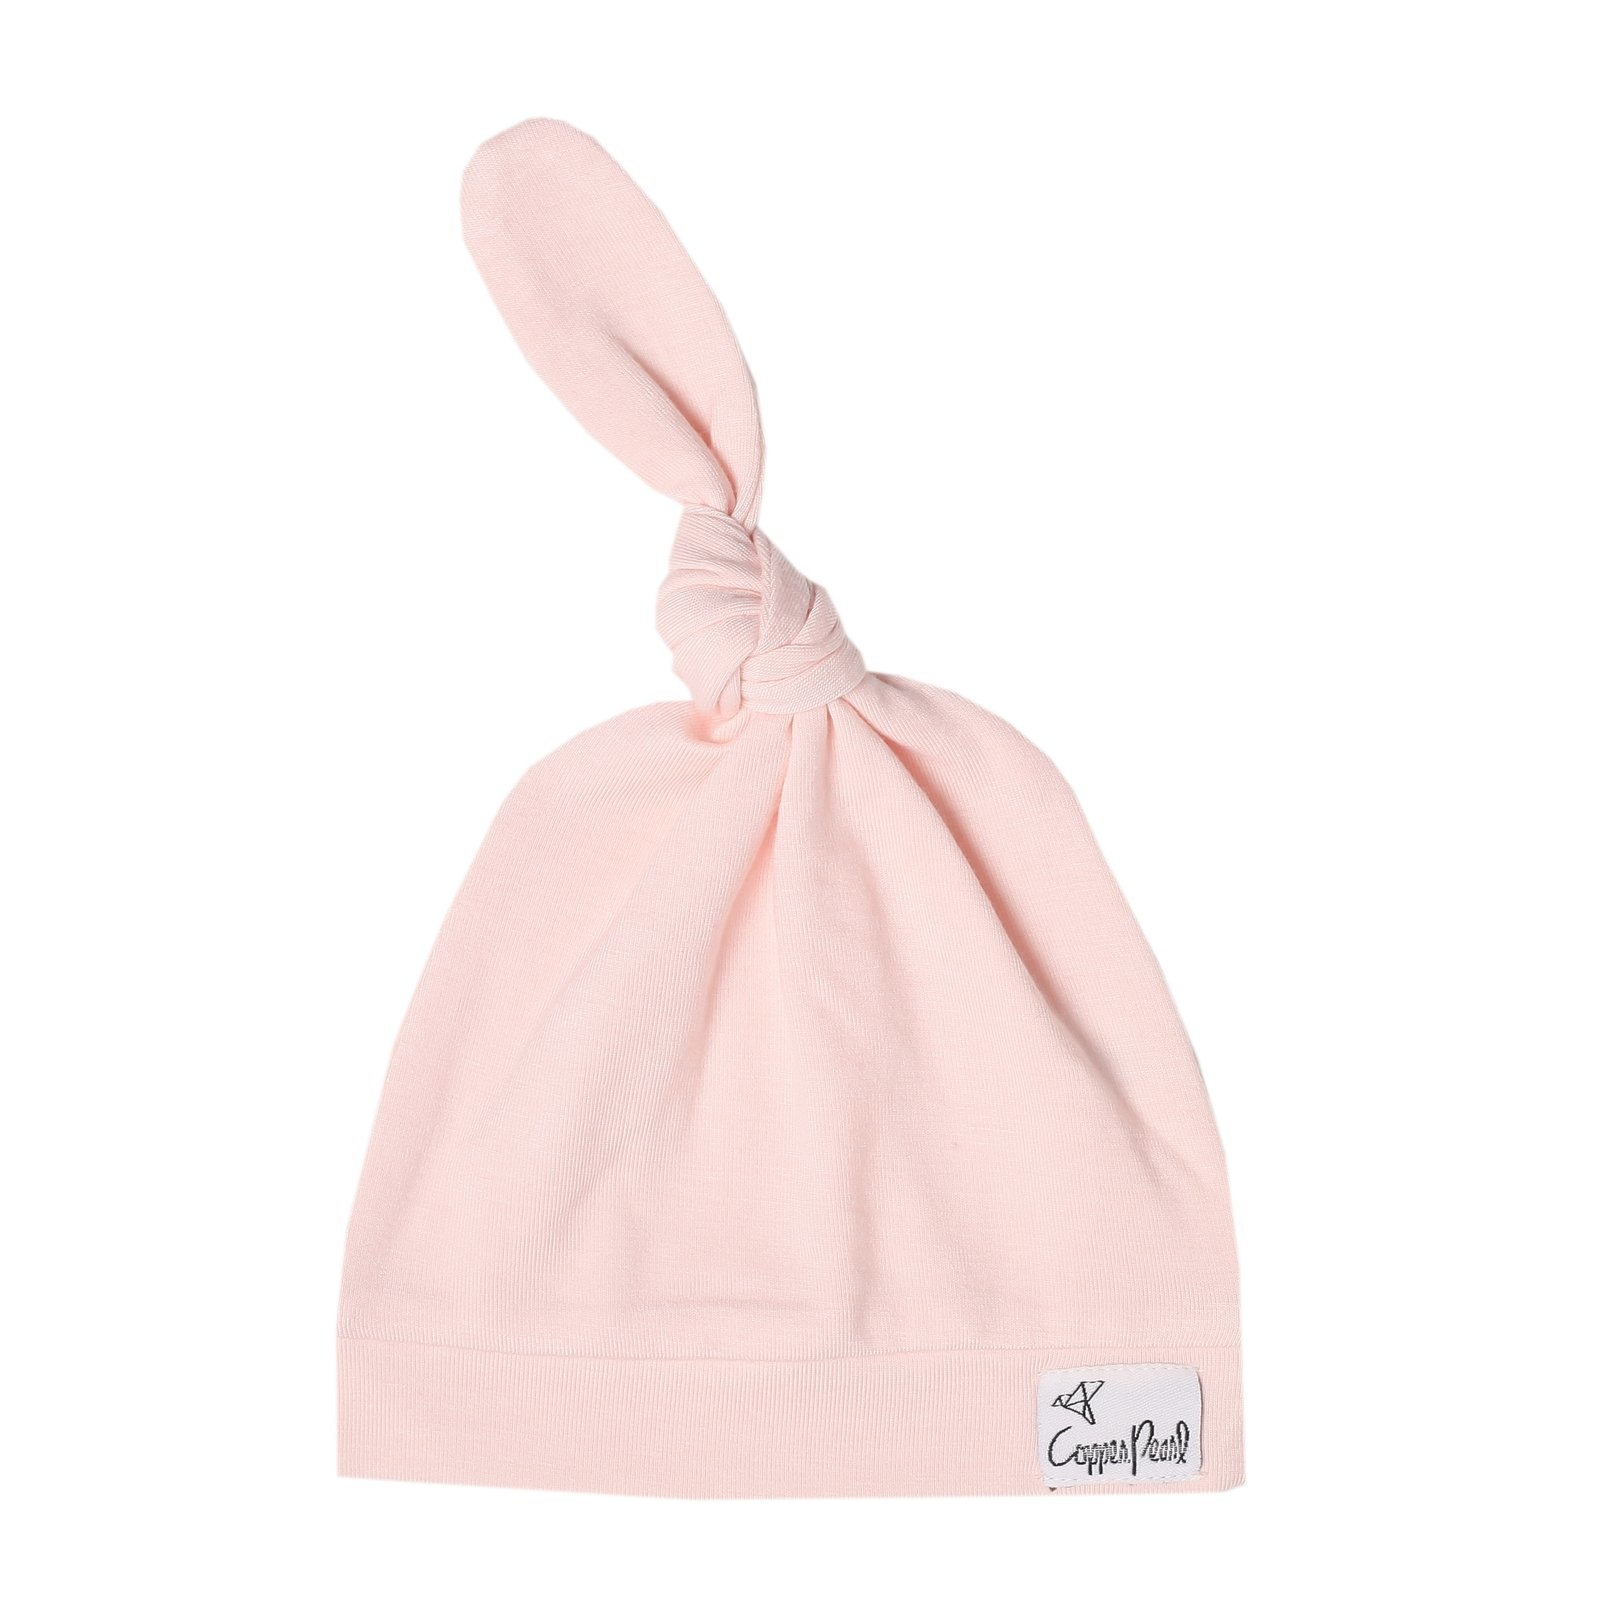 Copper Pearl Blush Top Knot Hat